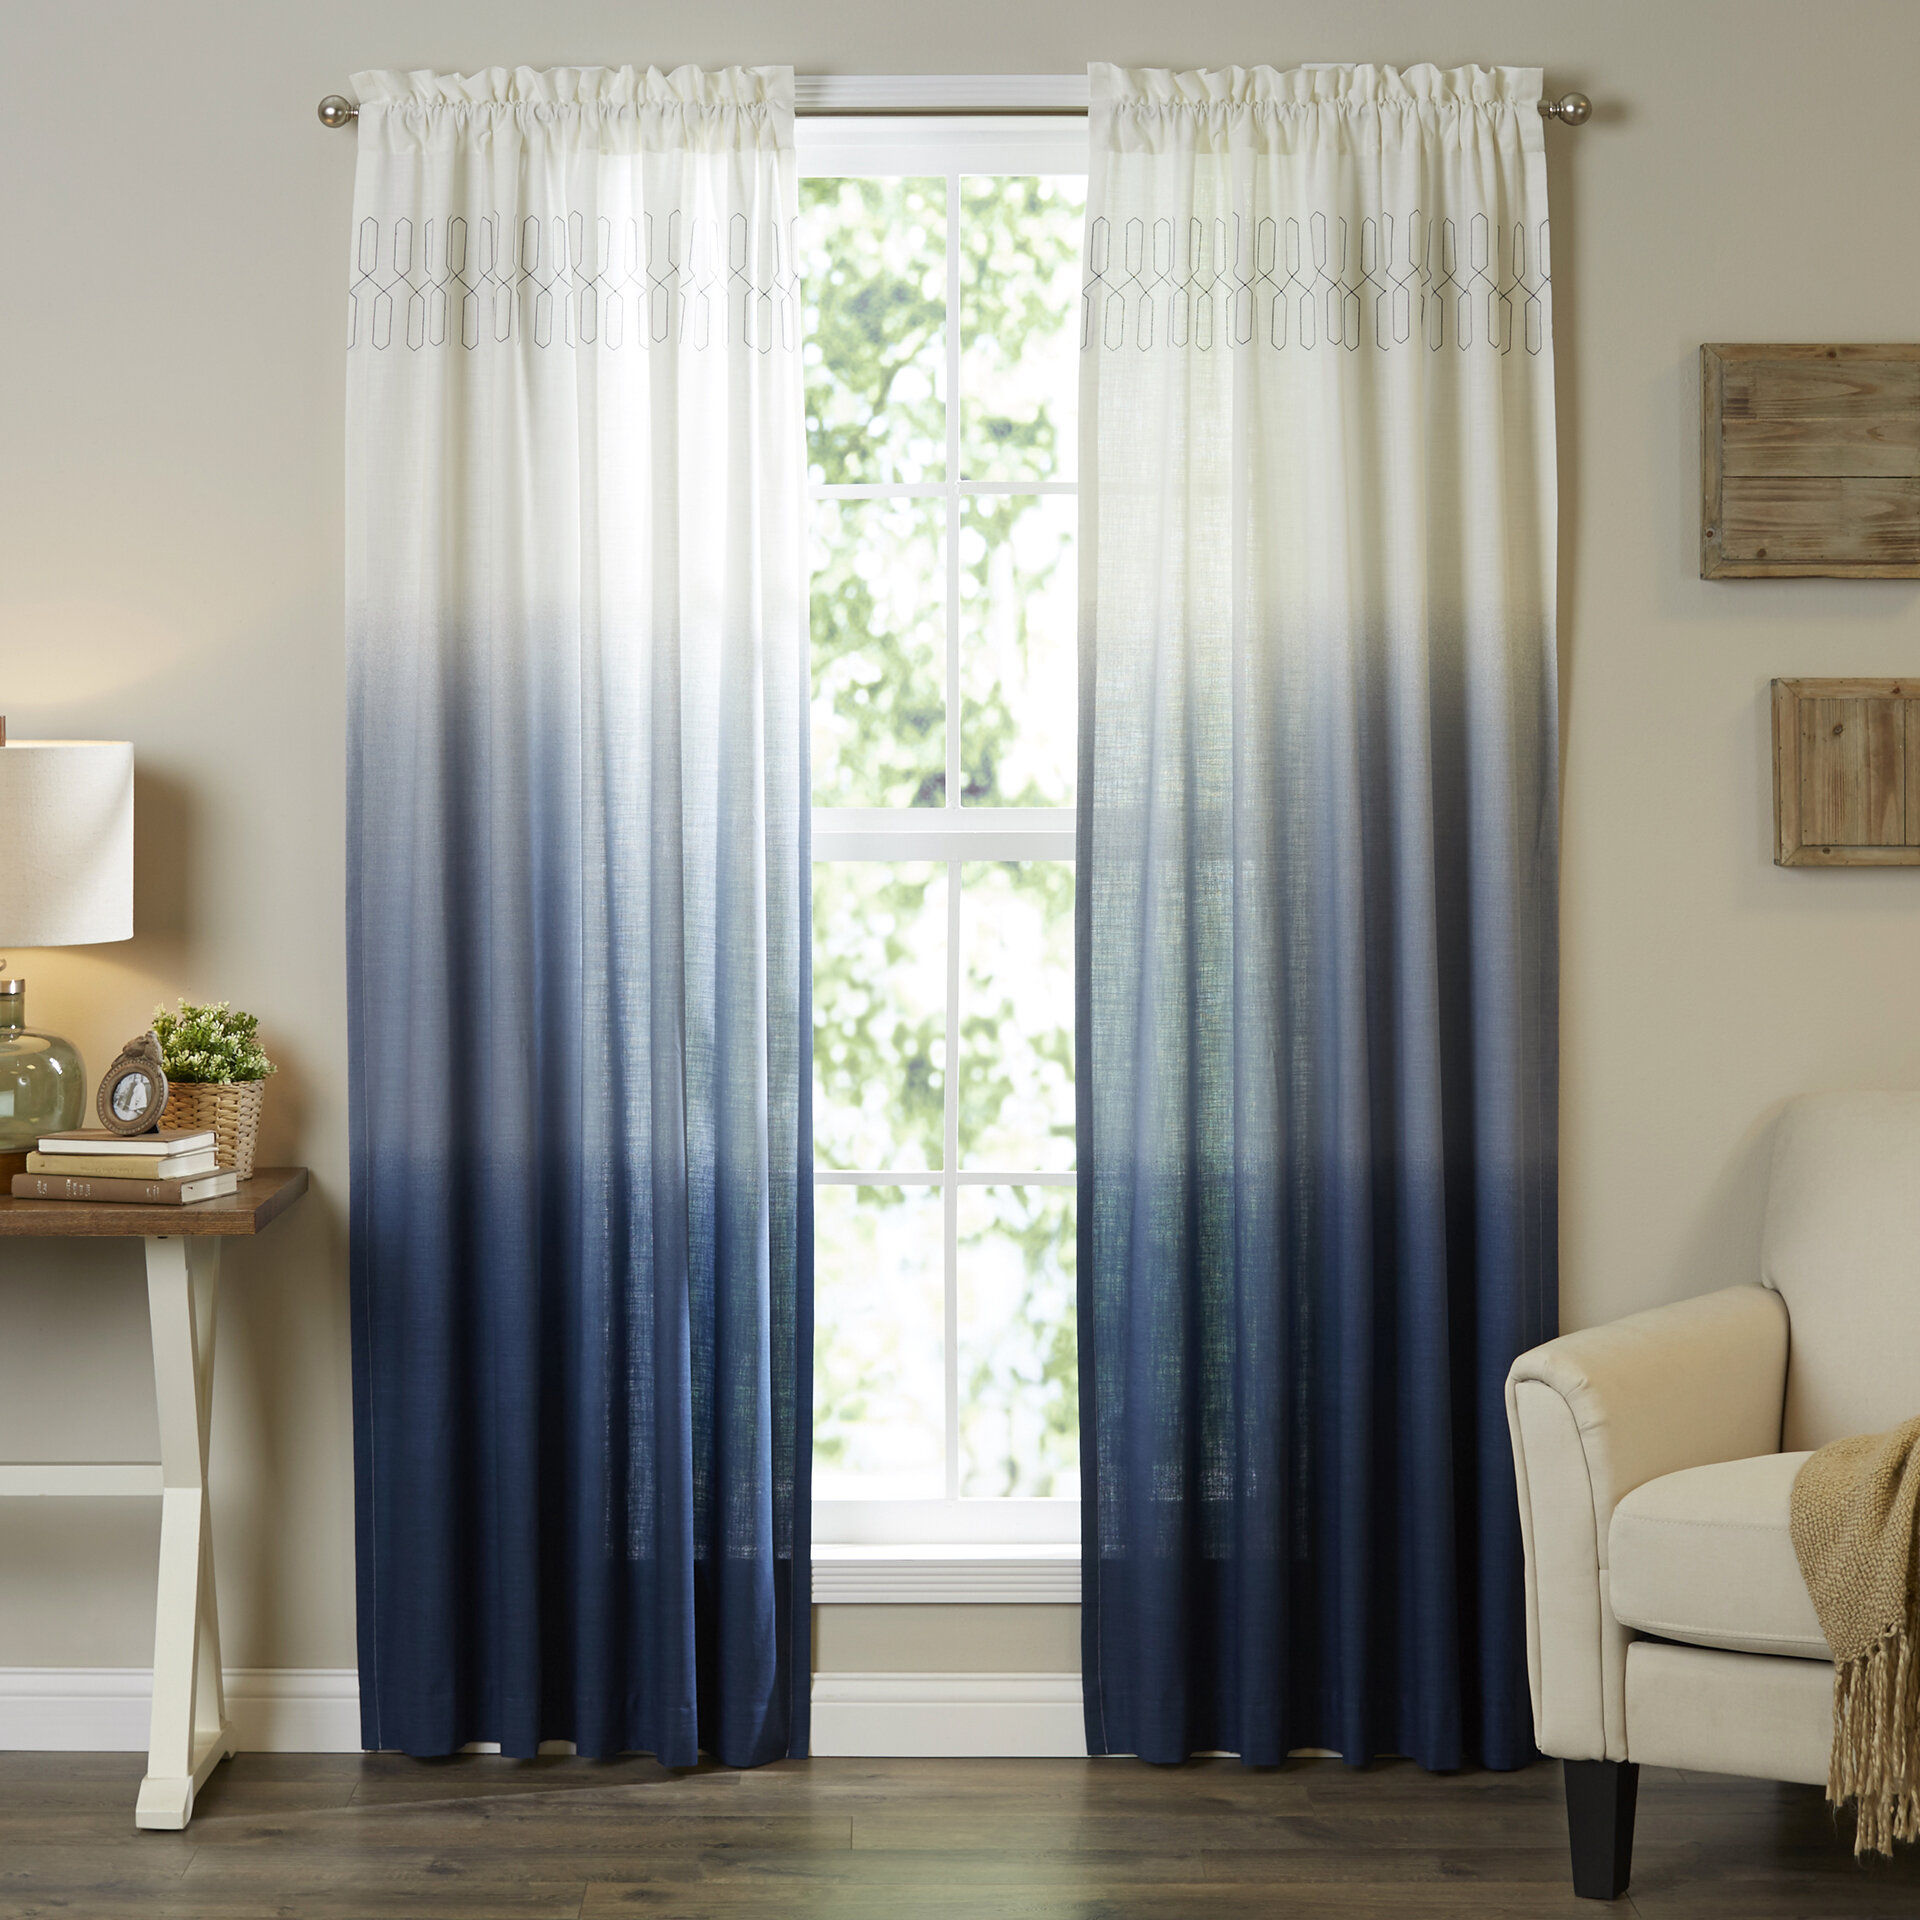 Higbee Solid Sheer Rod Pocket Single Curtain Panel Within Single Curtain Panels (View 7 of 31)